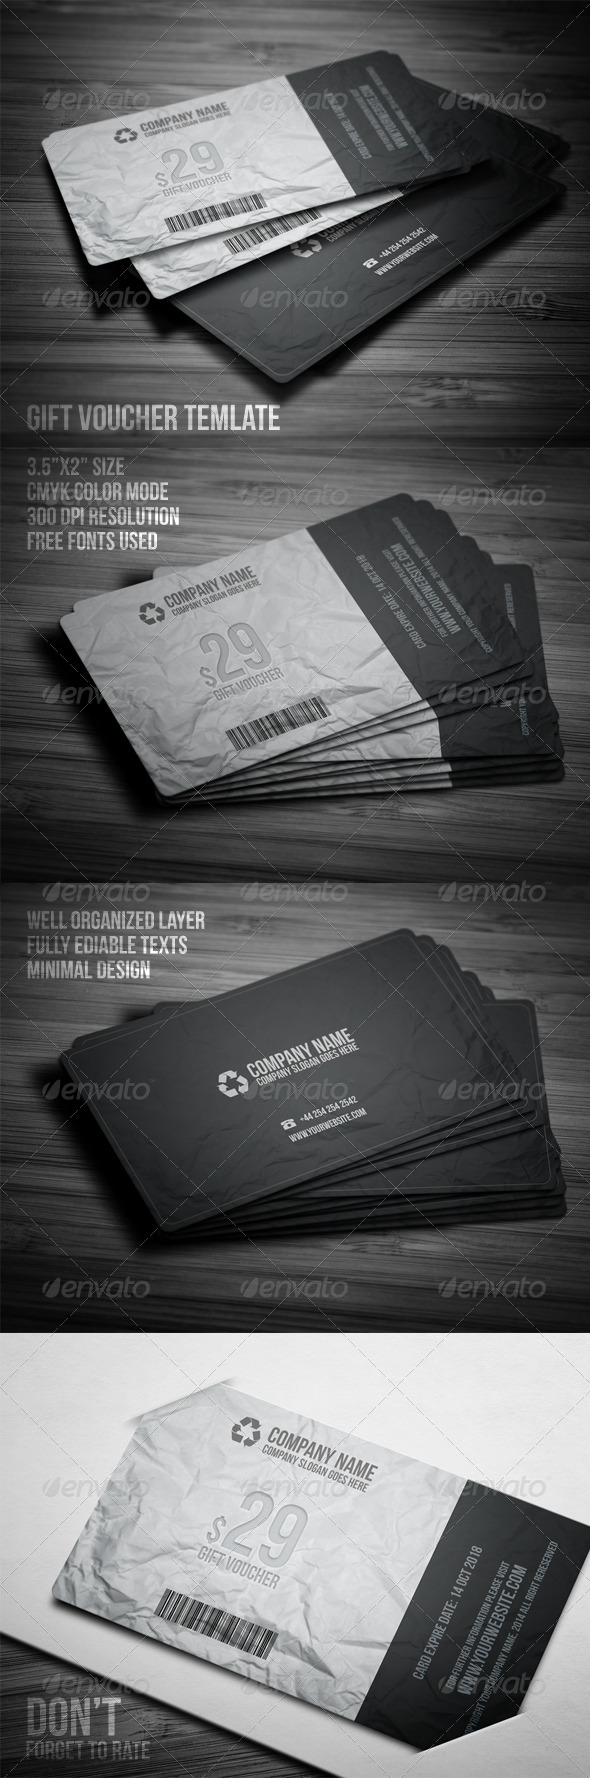 GraphicRiver Gift Voucher Card Template 7986046